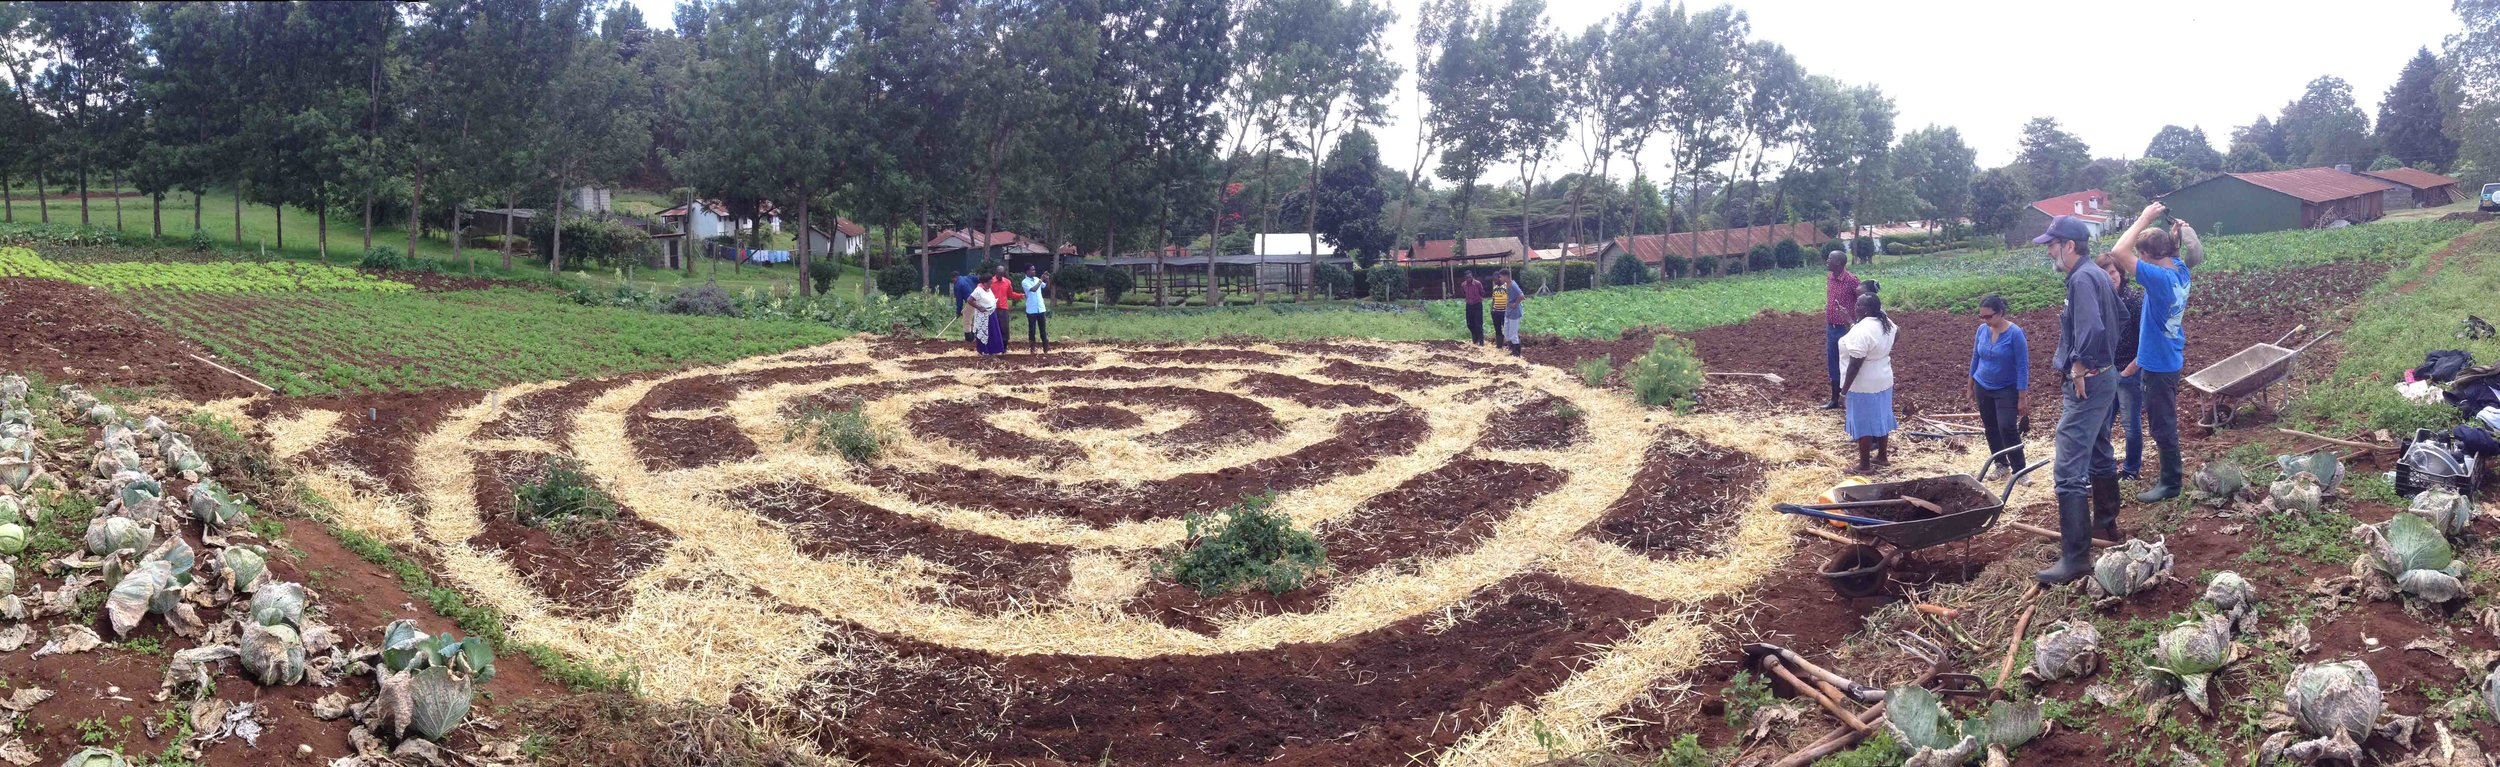 Mandala Garden taking shape